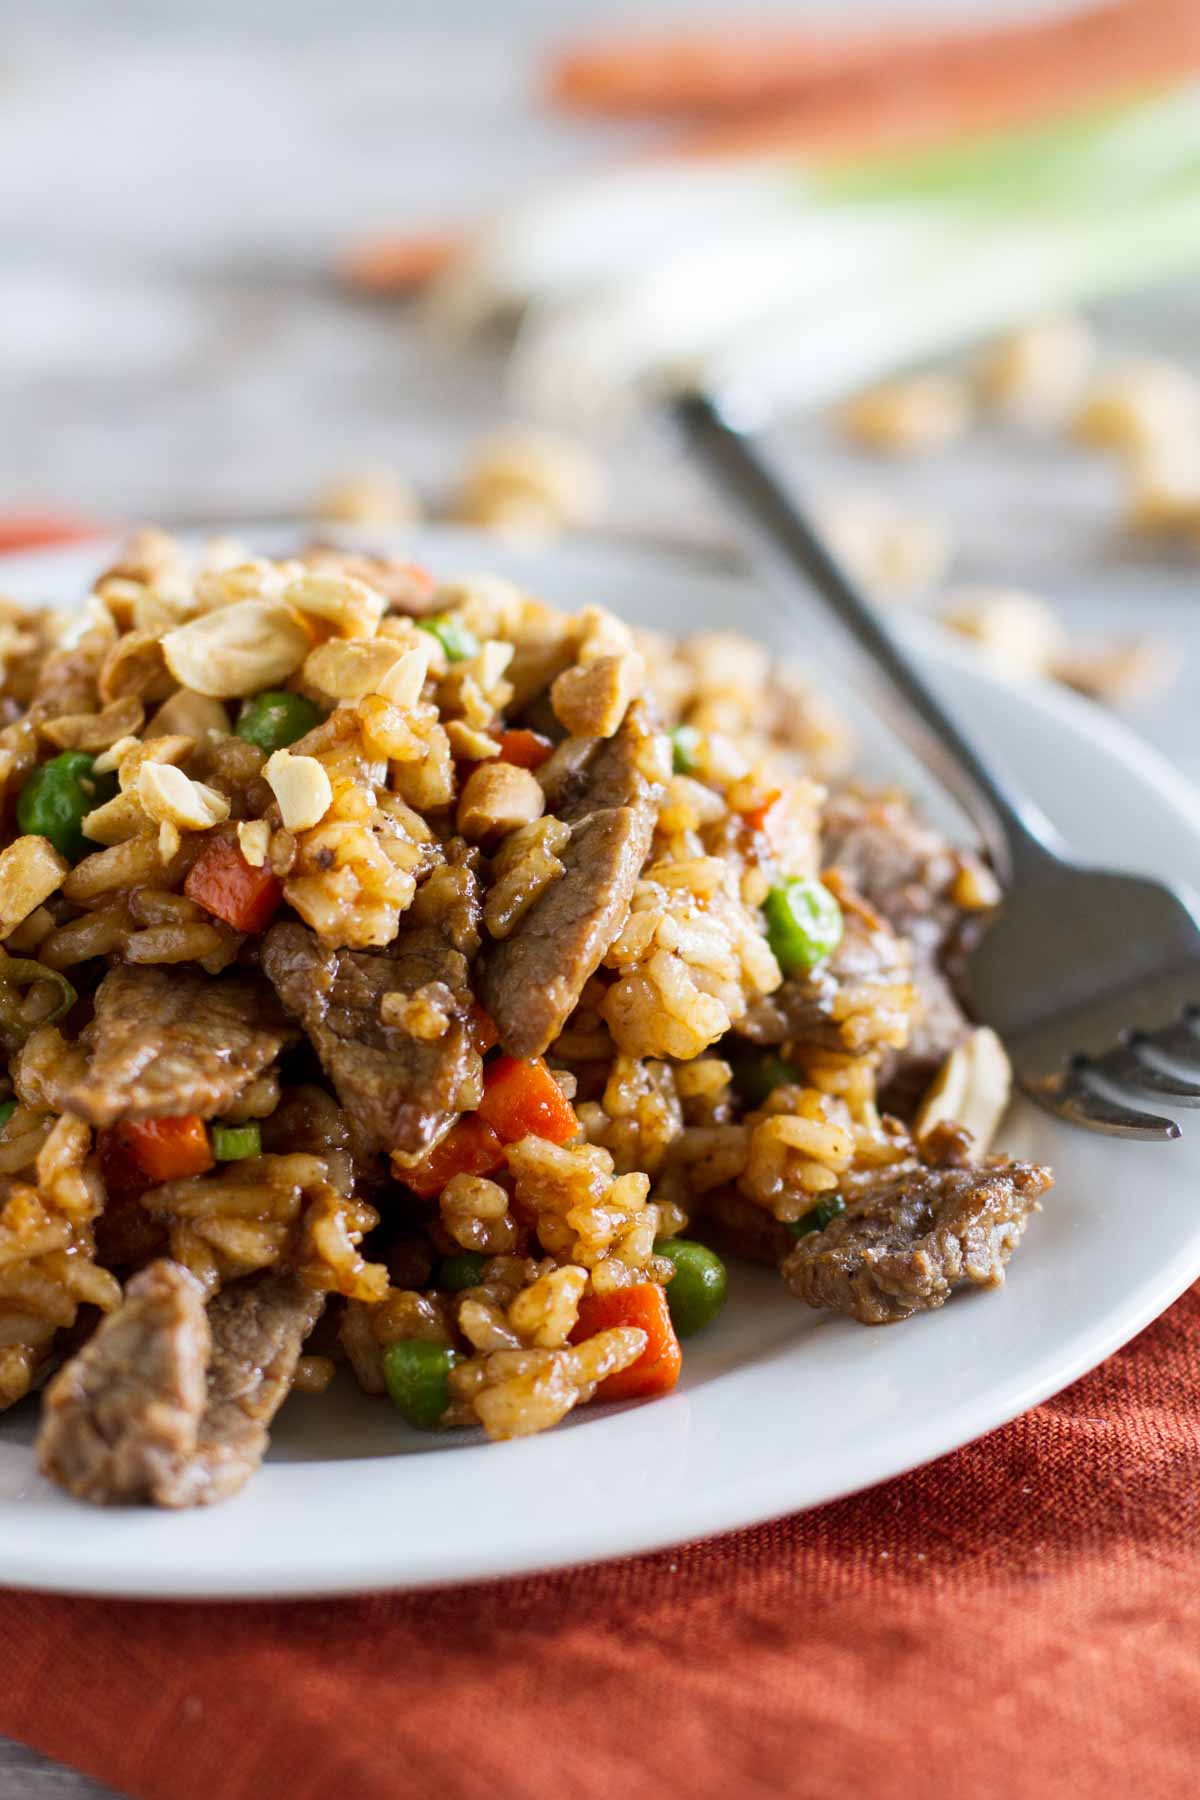 Asian Stir Fry Recipe Rice And Beef Stir Fry Taste And Tell